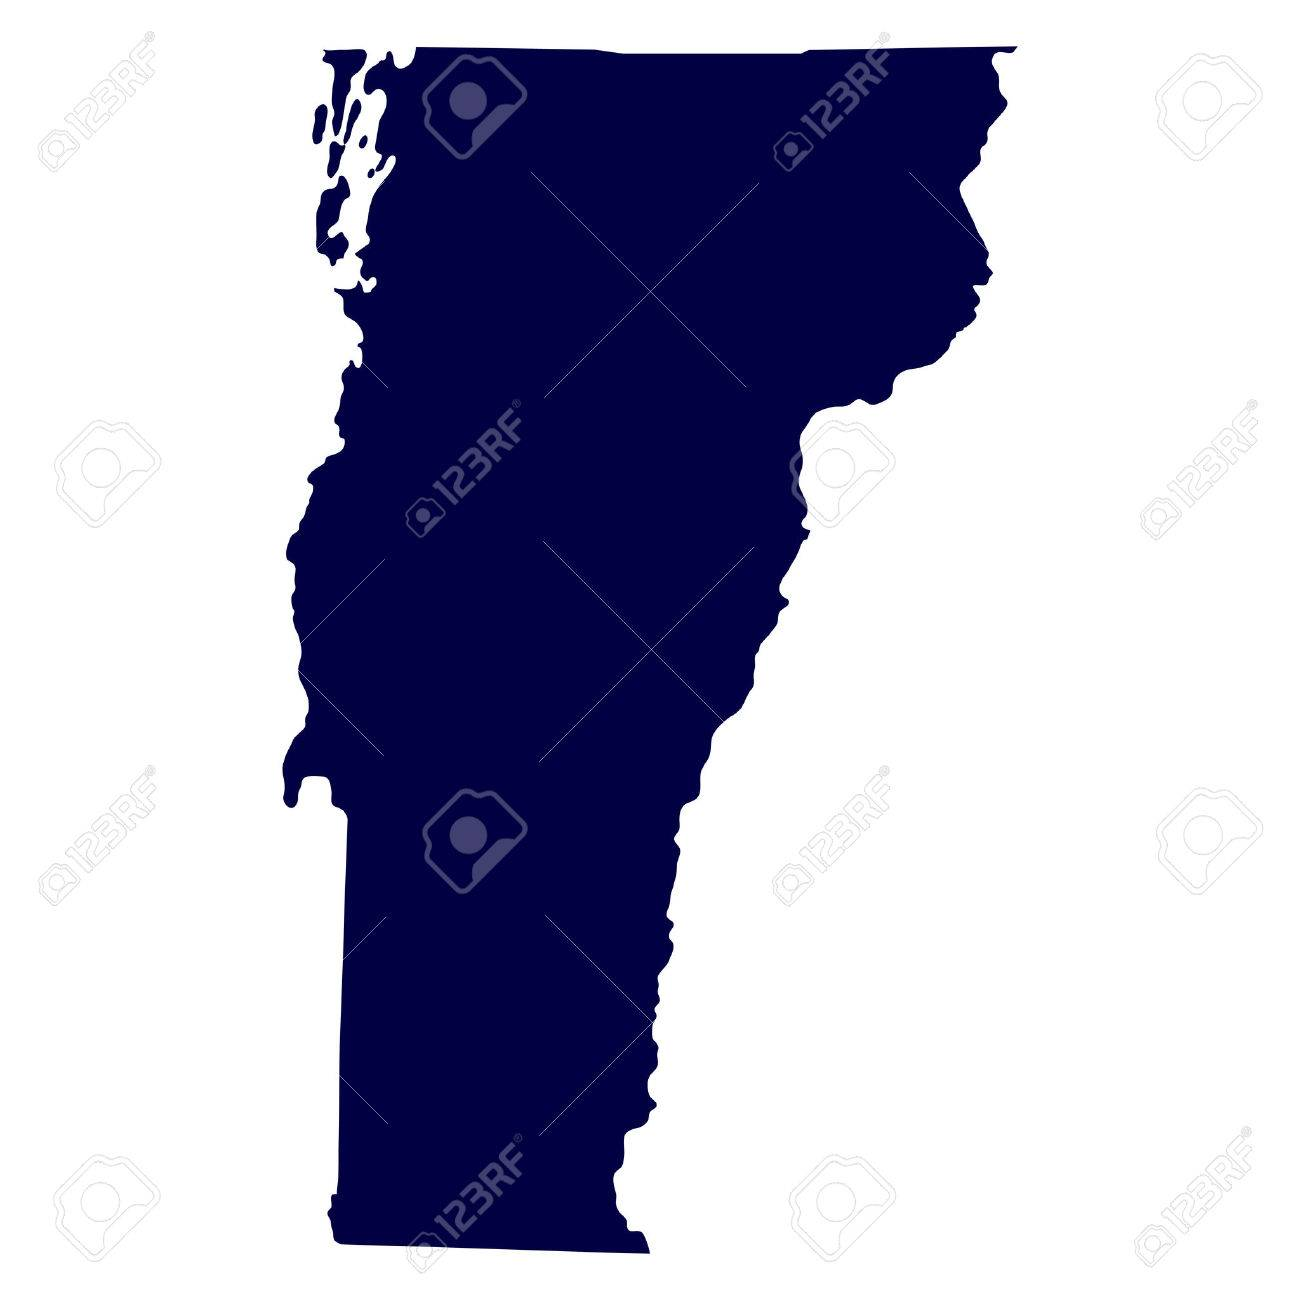 List Of Cities In Vermont Wikipedia Vermont On Us Map My Blog - Vermont in us map